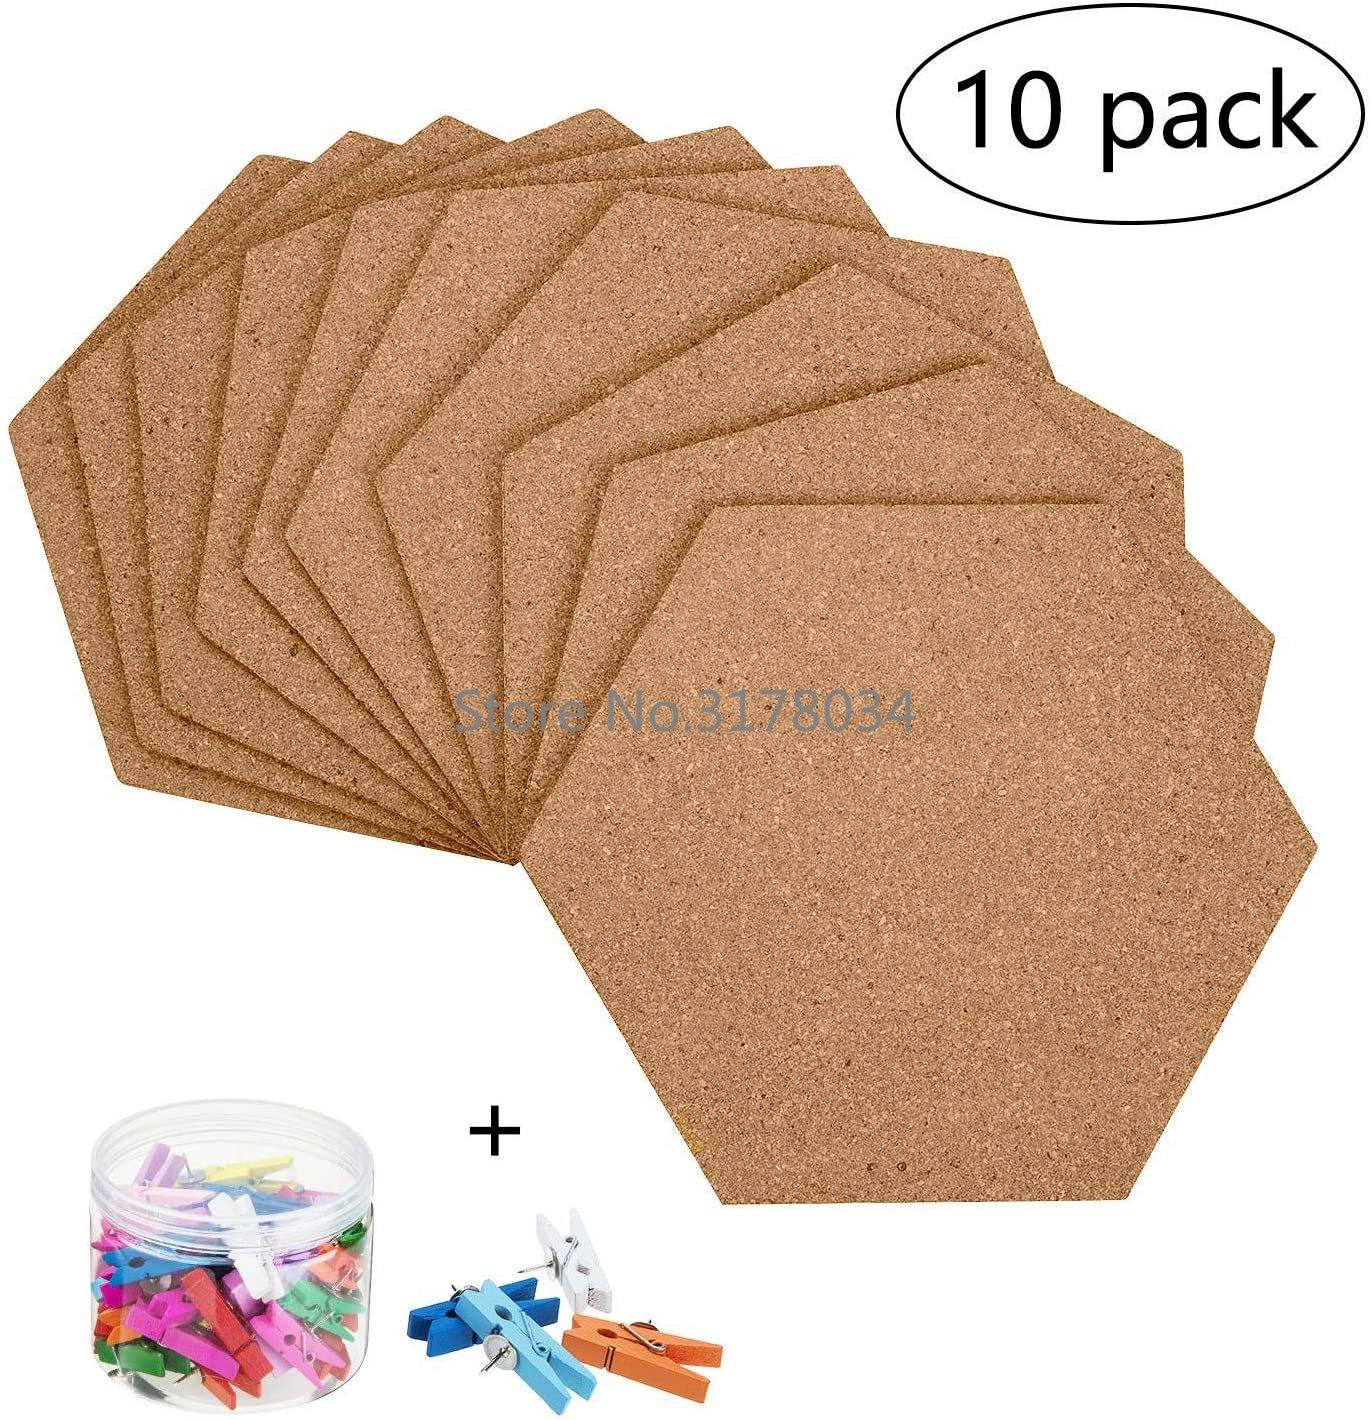 Self-Adhesive Cork Board Tiles Office Home Wood Photo Background Hexagon Stickers Wall Message Drawing Bulletin Boards